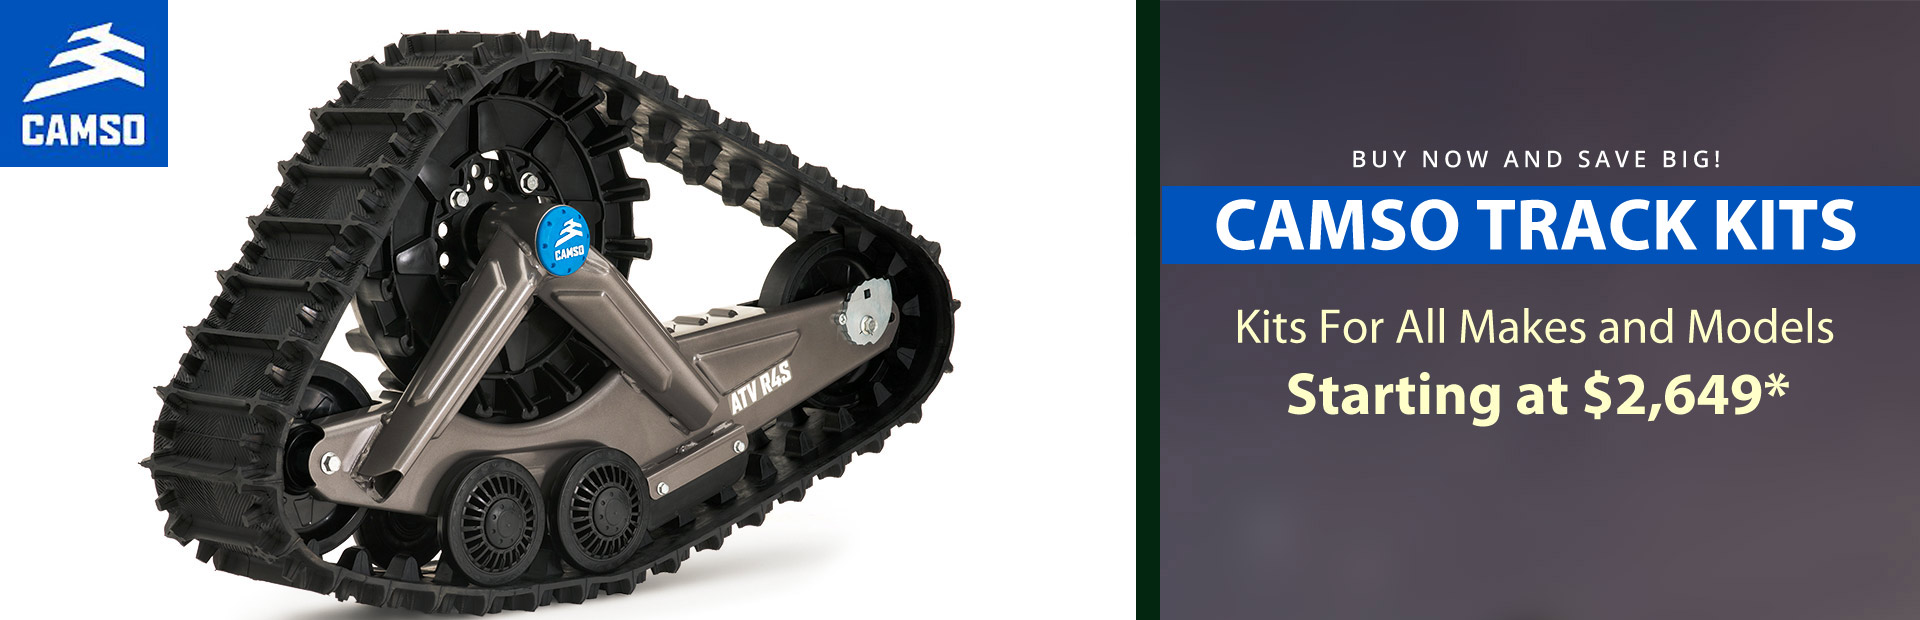 Casmo Track kits starting at $2,649